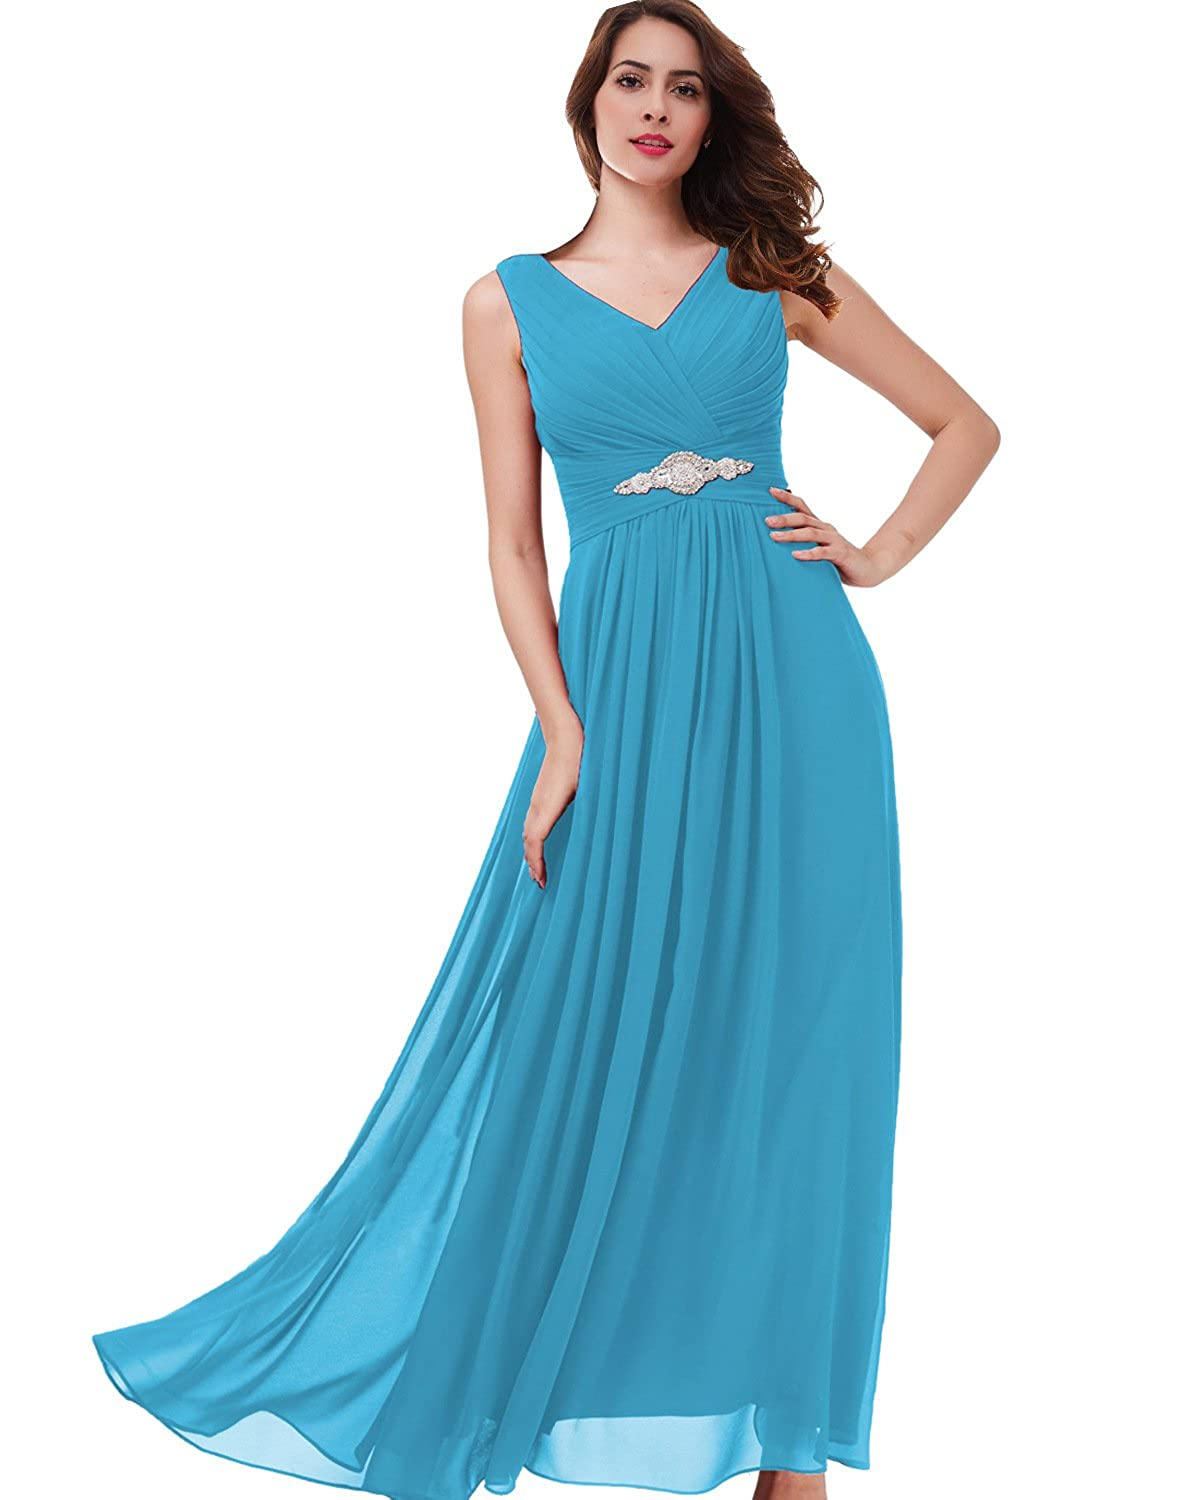 4c42471daa1 Lily Wedding Womens Beaded V Neck Bridesmaid Prom Dresses 2018 Long Formal  Evening Party Gowns TB51 at Amazon Women s Clothing store